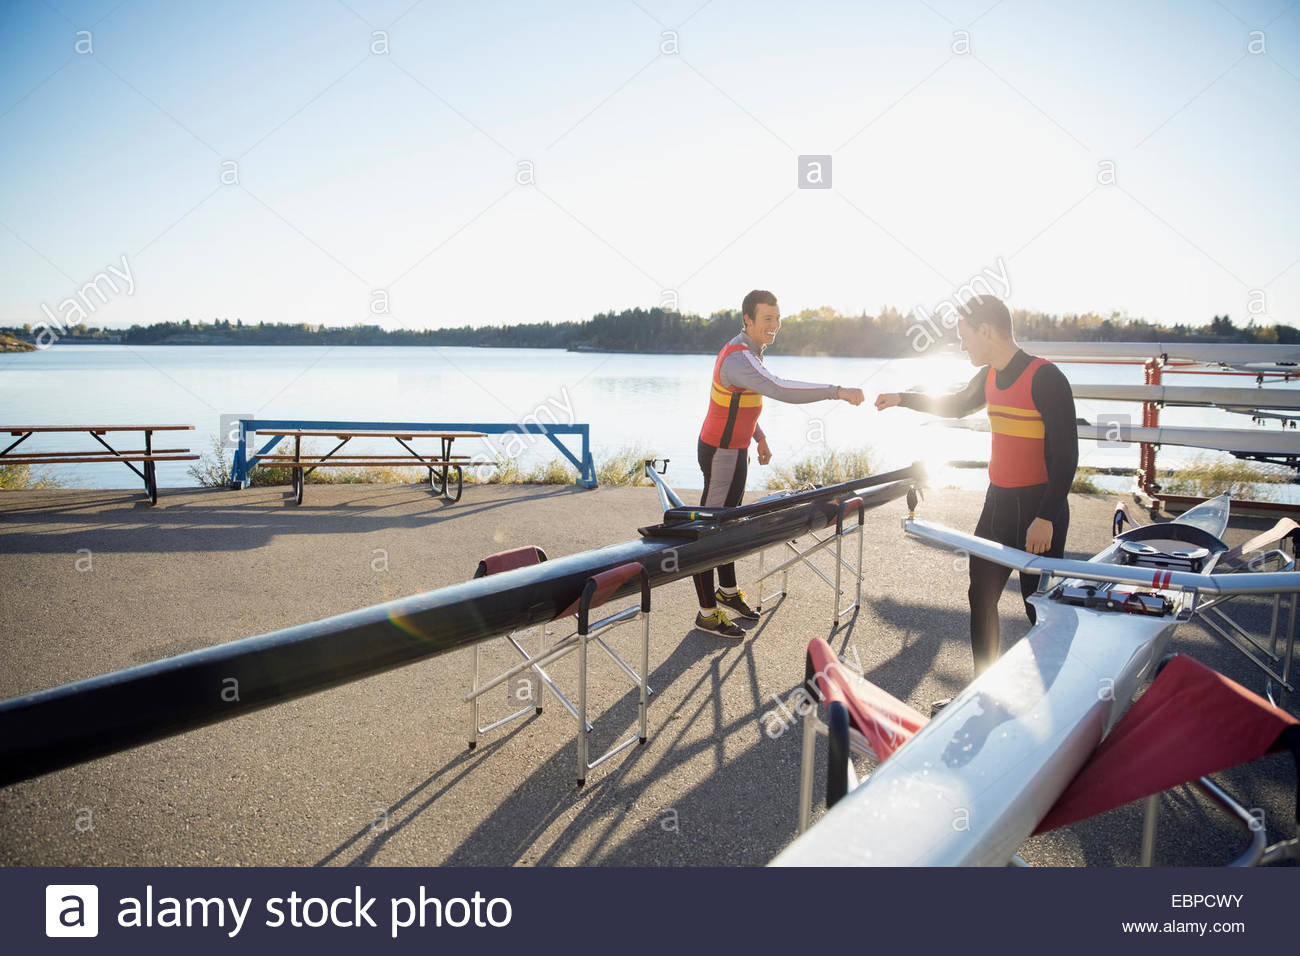 Rowers fist pumping at waterfront - Stock Image